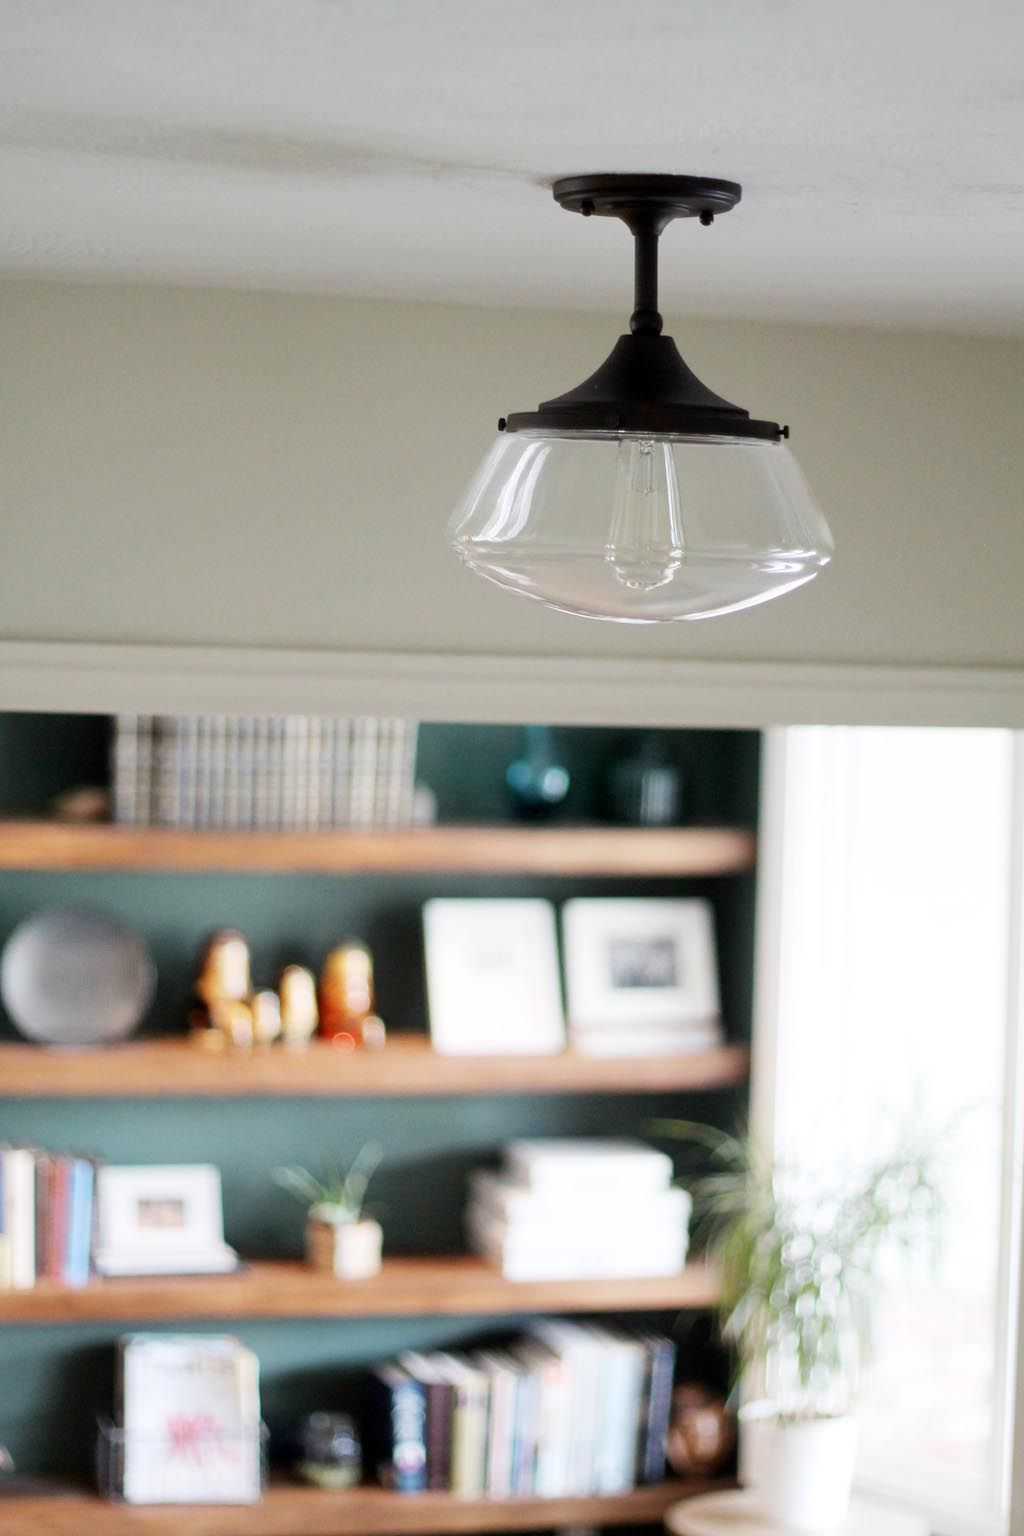 Modern Farmhouse Light Fixtures   Light Fixtures   Pinterest     Modern Farmhouse Light Fixtures